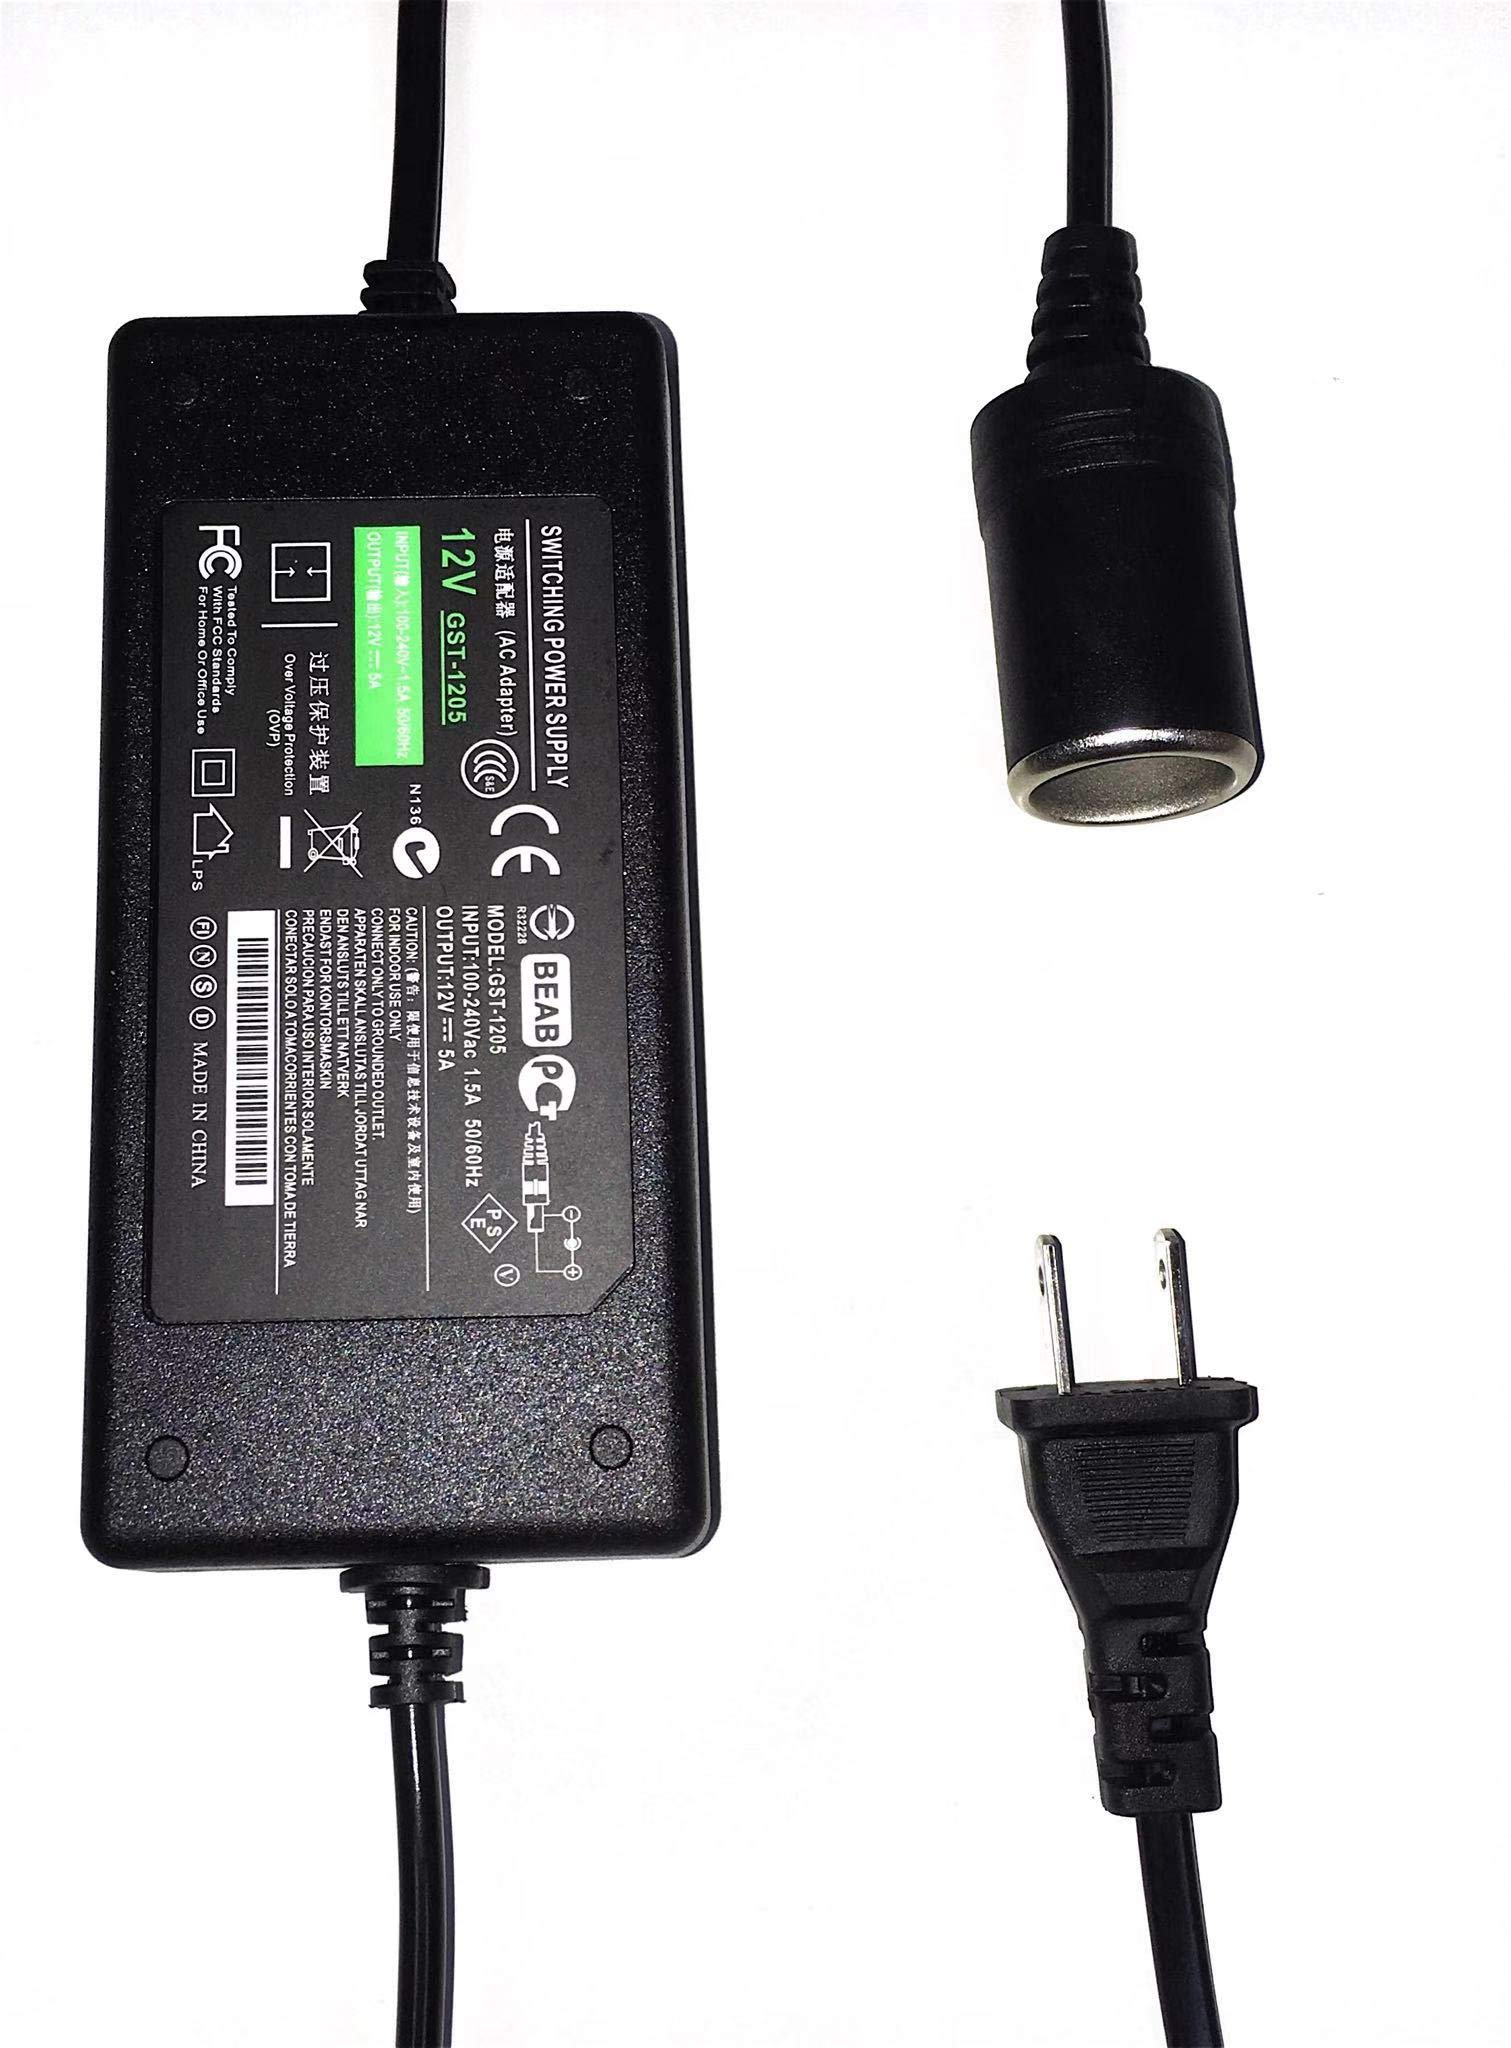 5 Amp 110V-240V AC to 12V DC Power Adapter, NALAKUVARA AC/DC Converter with Car Cigarette Lighter Socket for Car Vacuum Cleaner Car Fan Car Air Purifier Car MP3 Tire Inflator Other Car Devices by NALAKUVARA